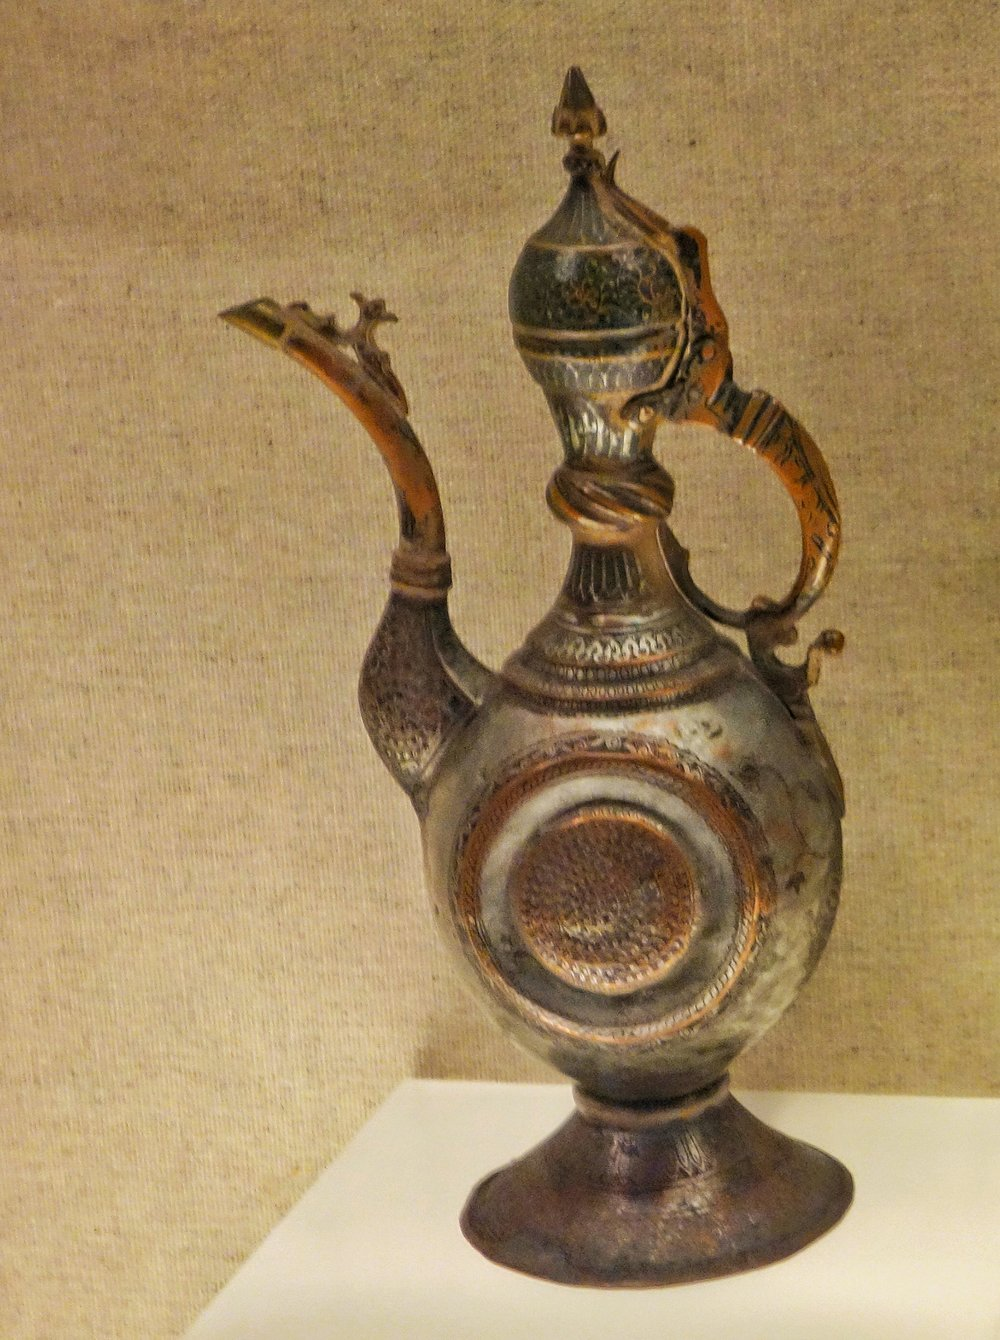 Ughyur Copper Pitcher with a Carved Motif and a Lacquered Inlay-01.jpeg